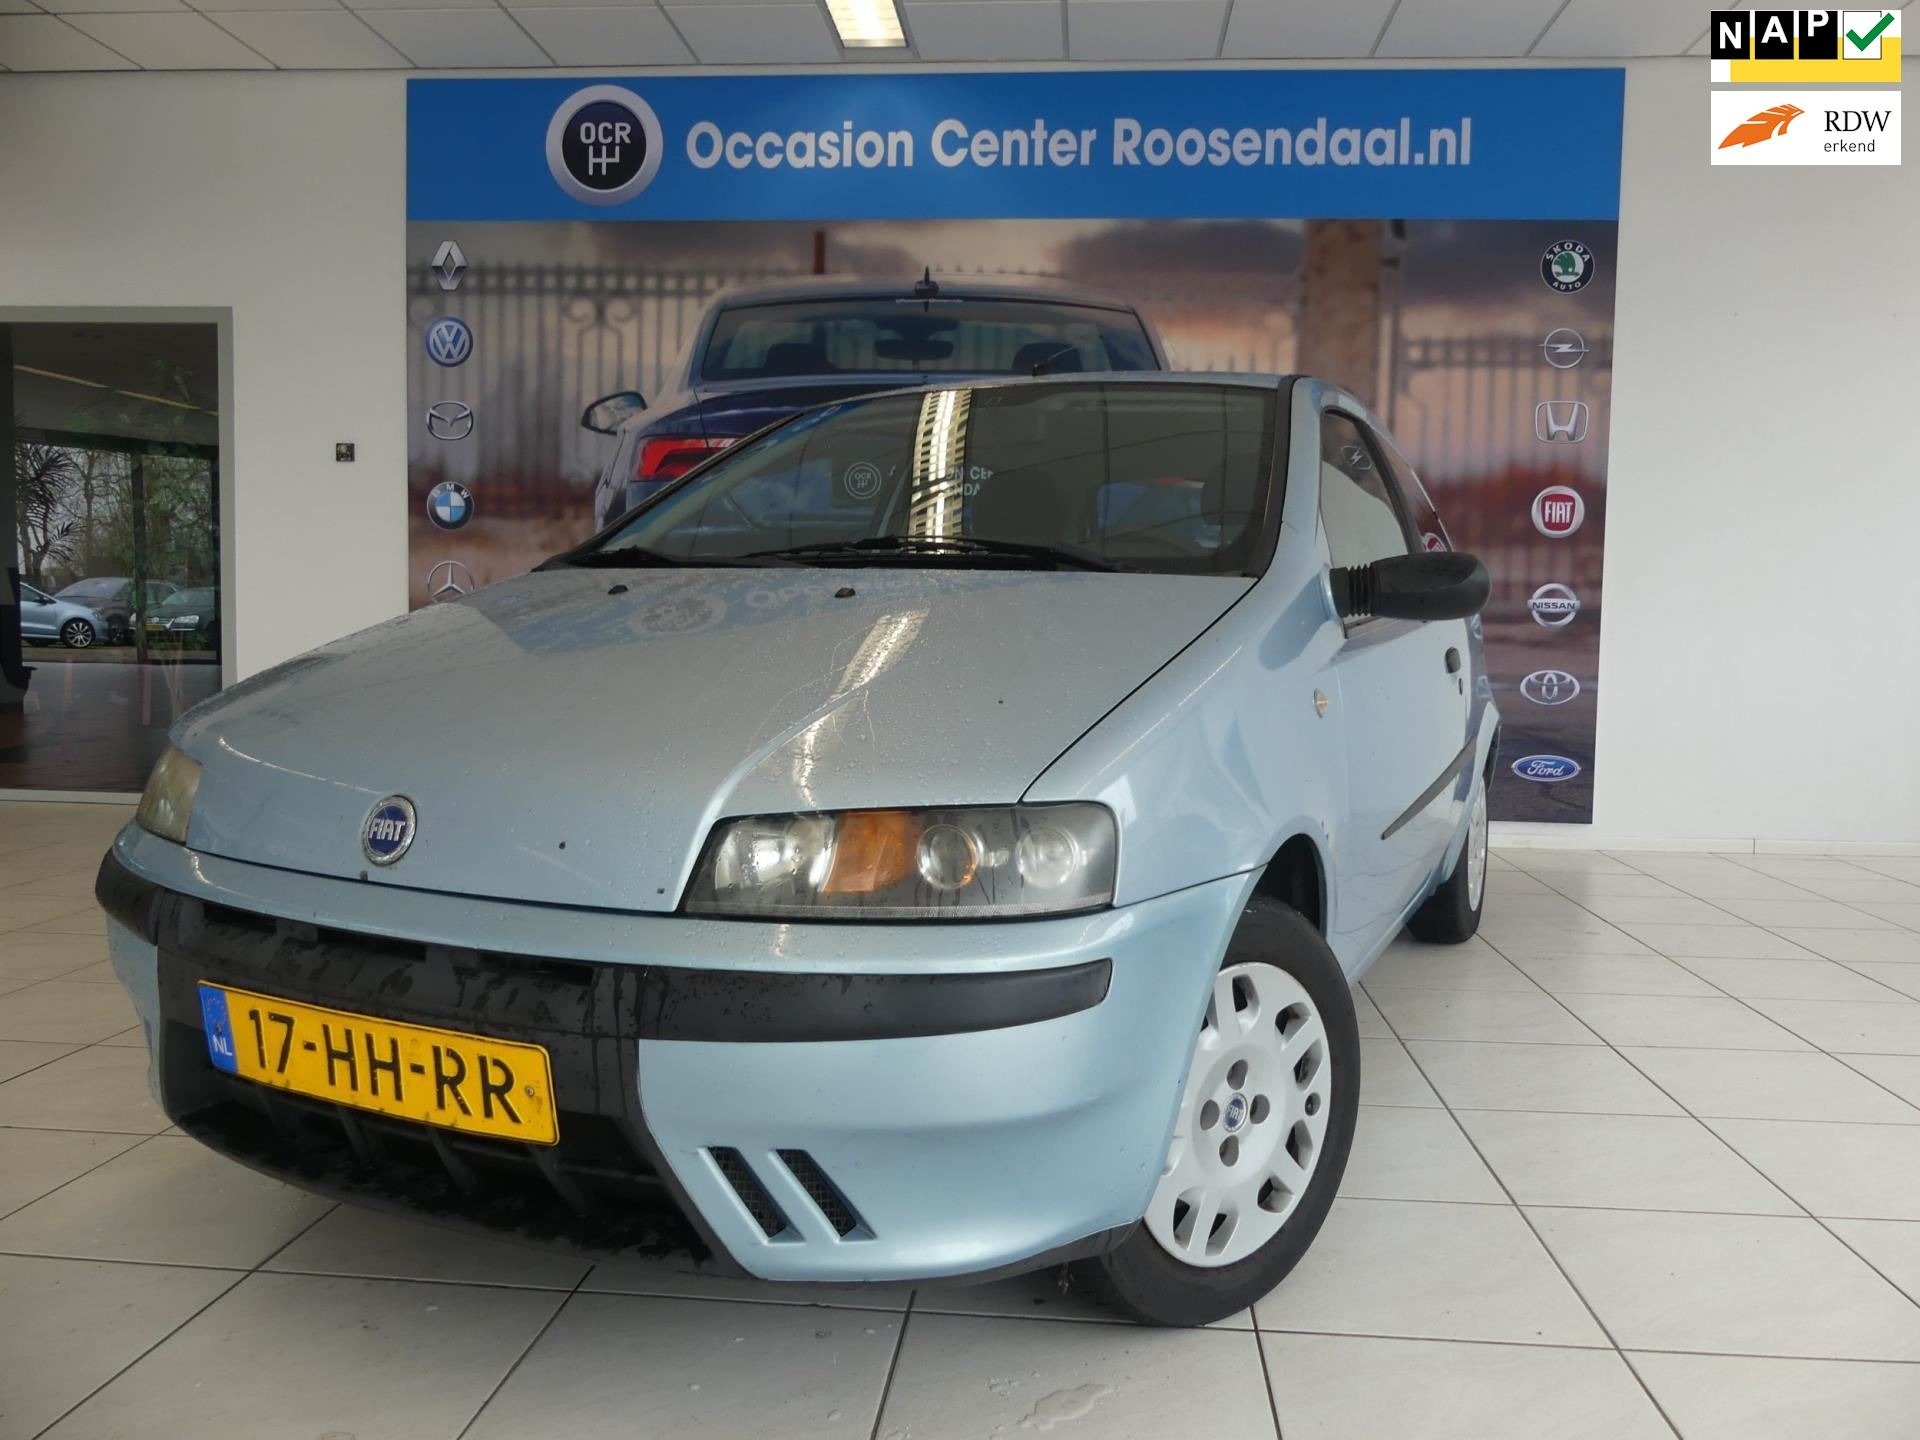 Fiat Punto occasion - Occasion Center Roosendaal